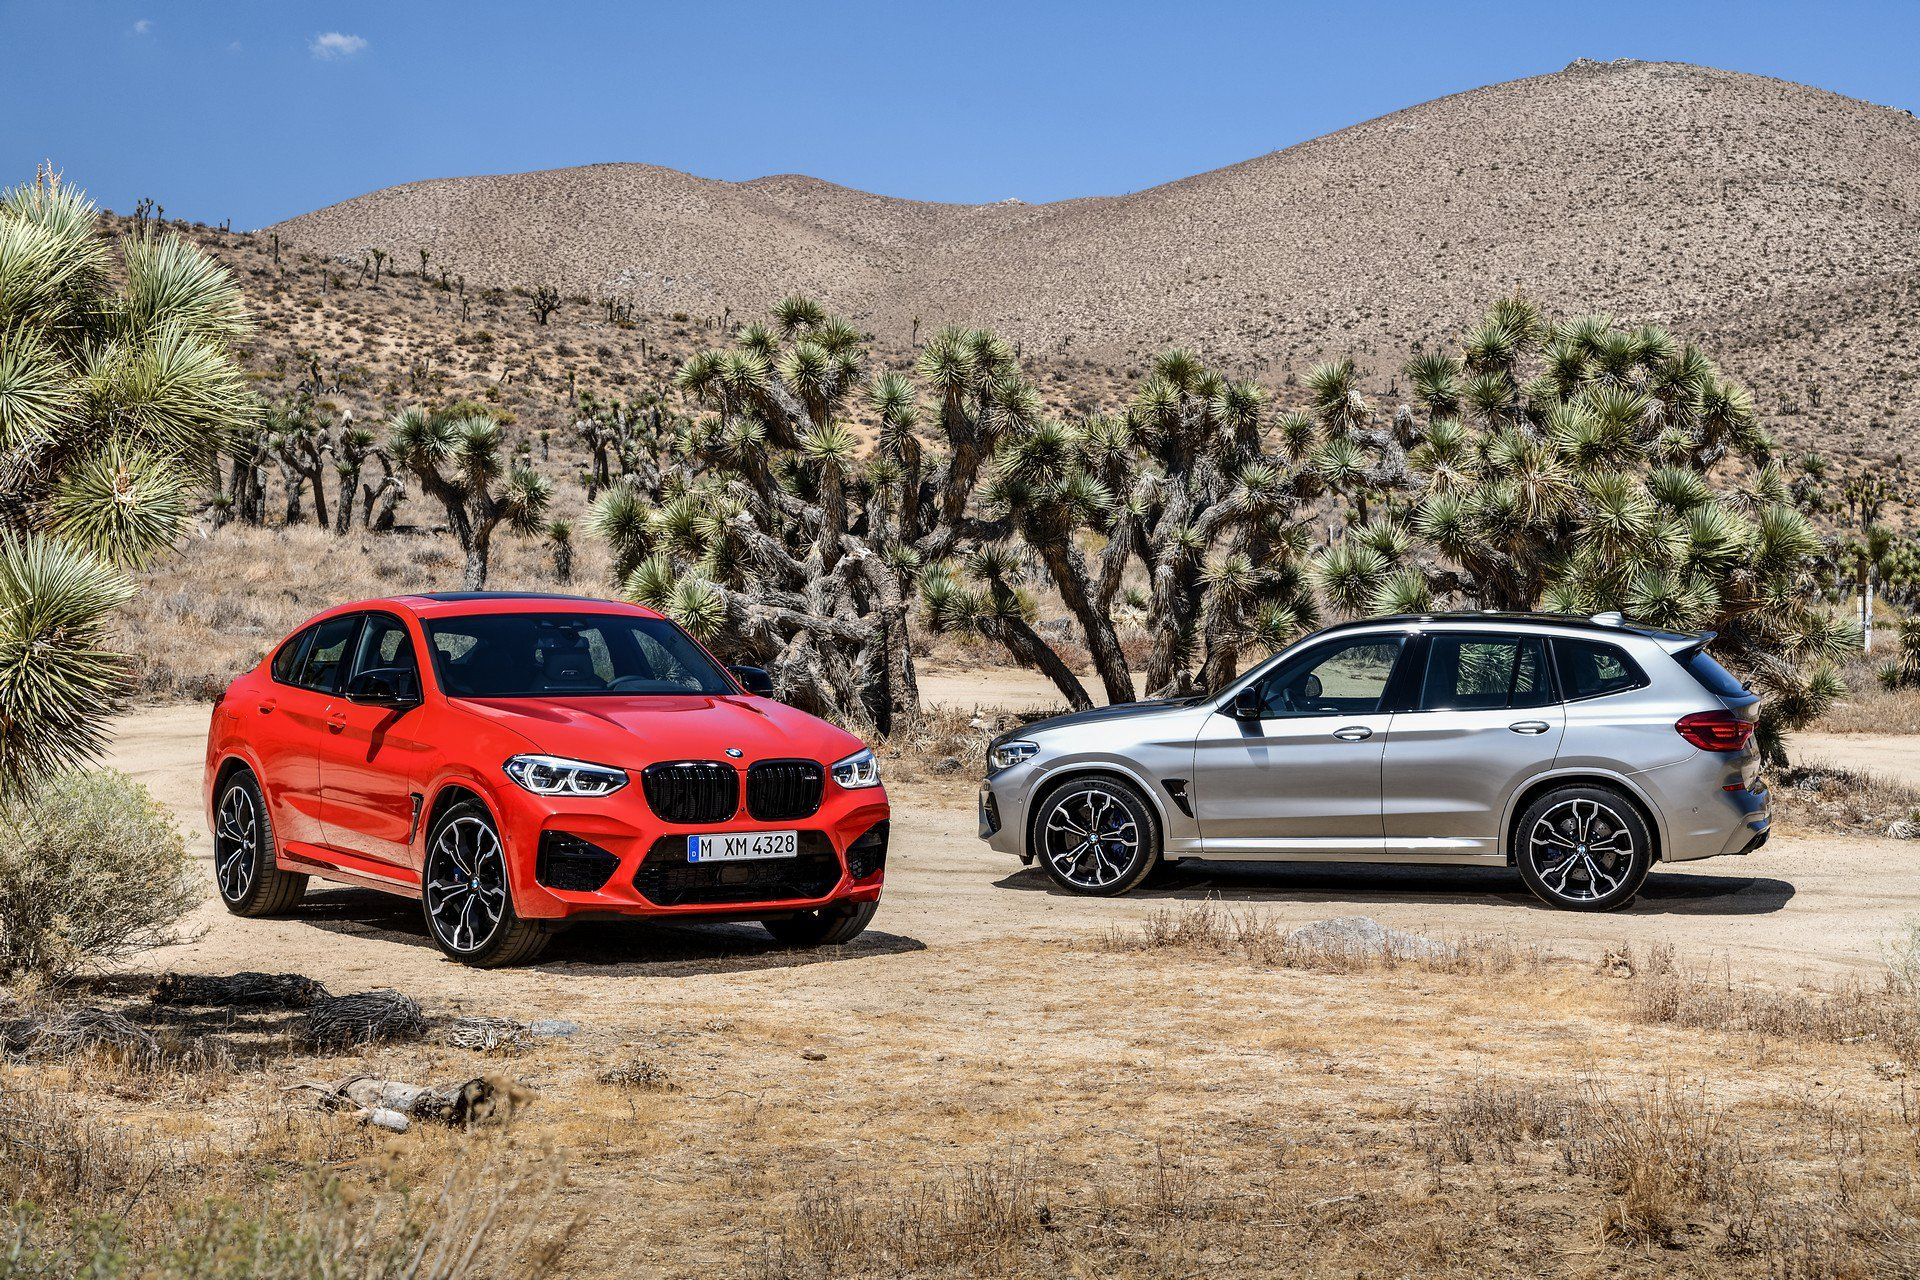 2020 Bmw X3 M And X4 M Go Official Rocket From 0 60 Mph In 4 1